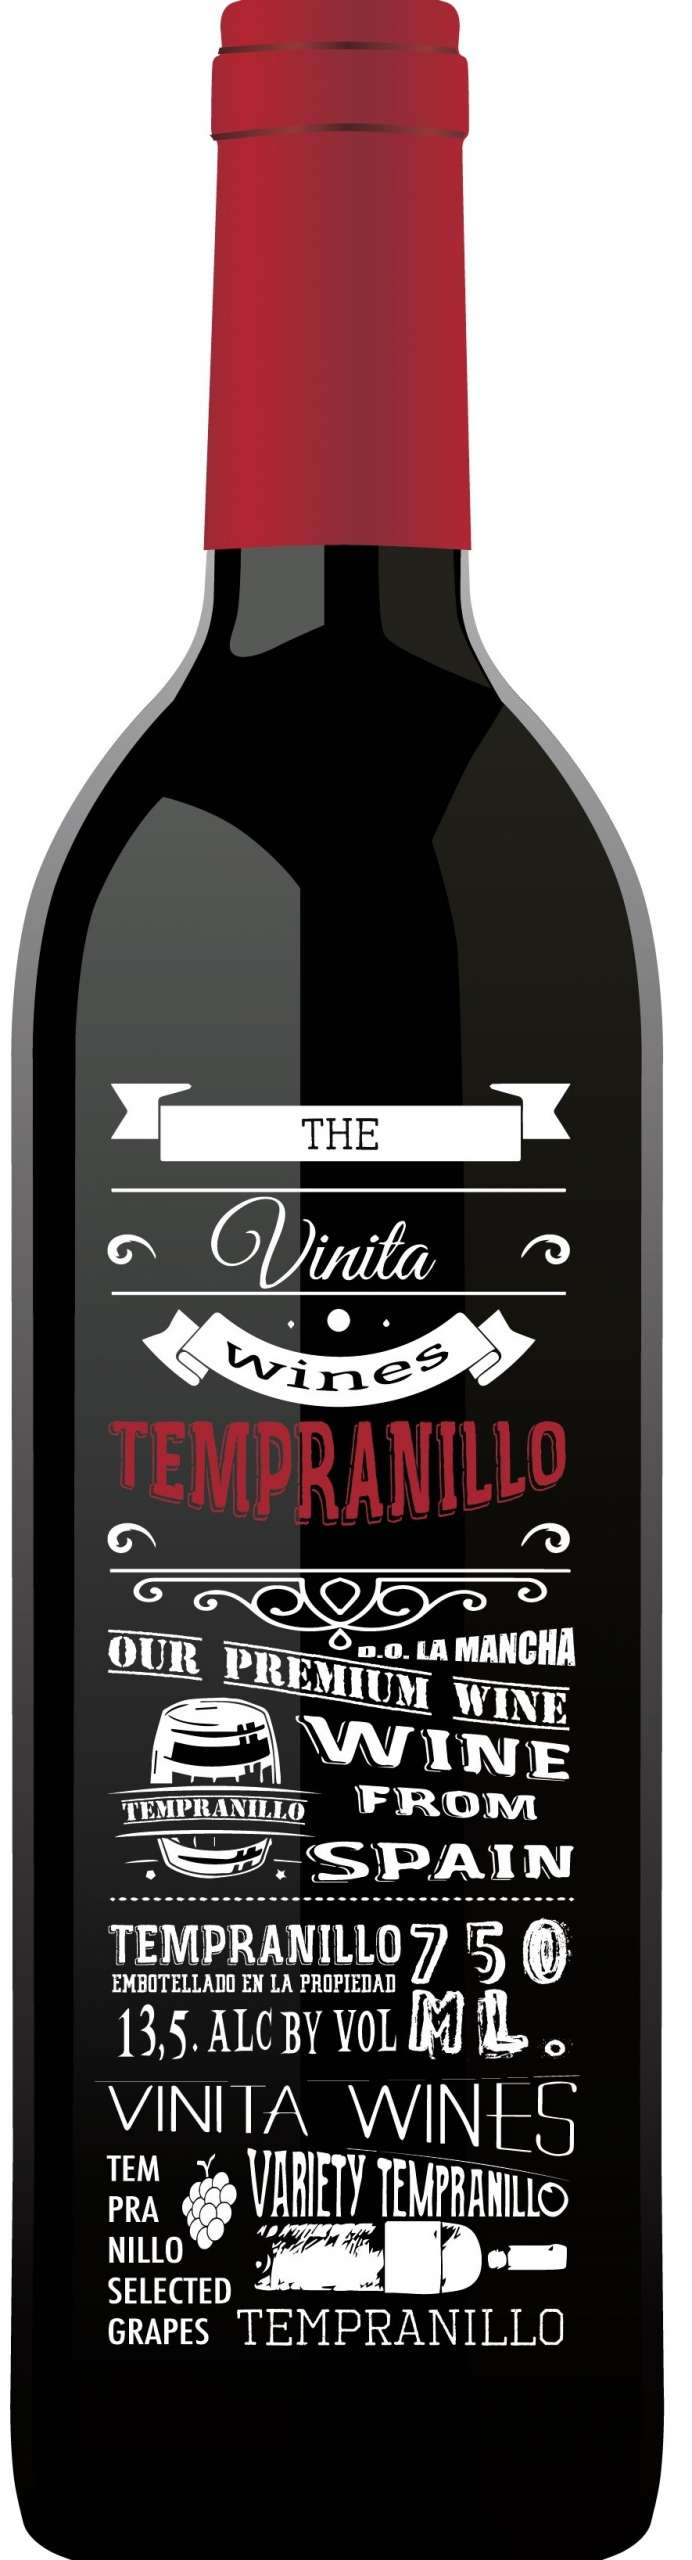 The Vinita Wines Tempranillo 2016-0